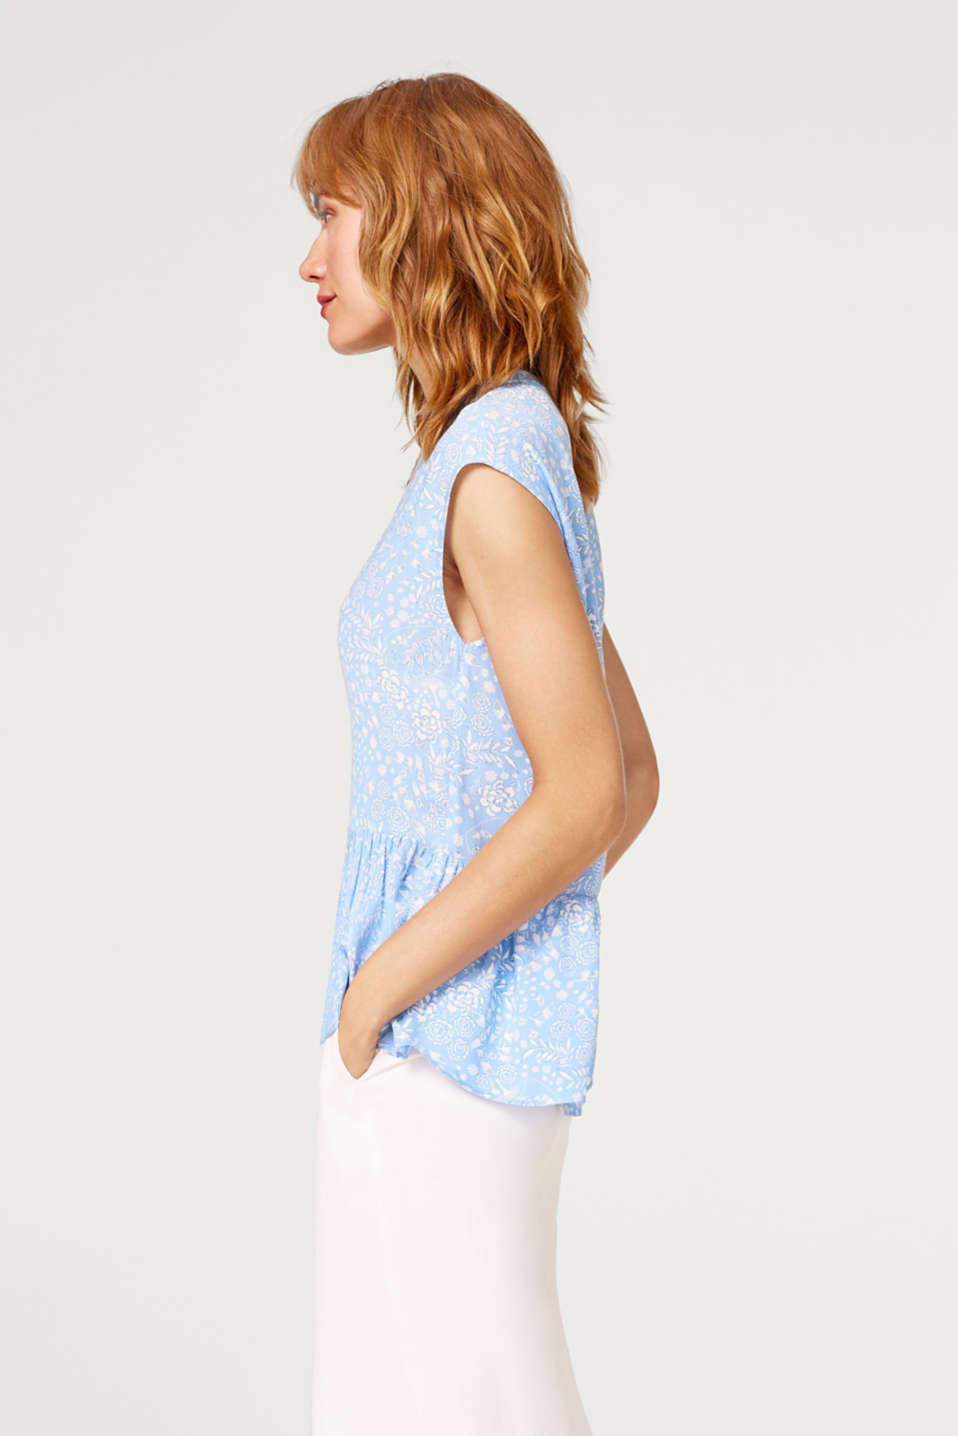 Patterned blouse top with a flounce hem